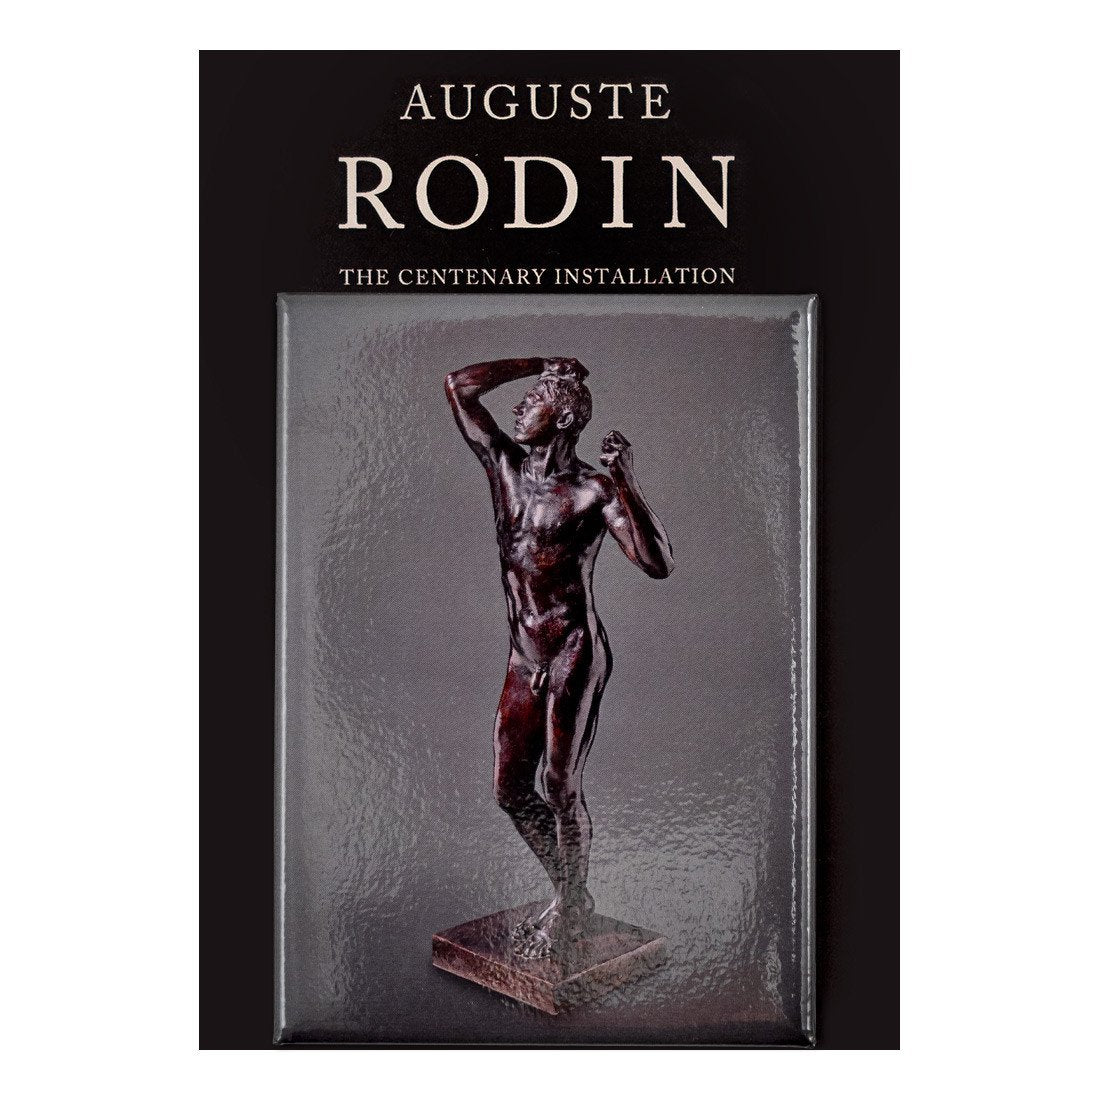 Auguste Rodin The Age of Bronze Magnet